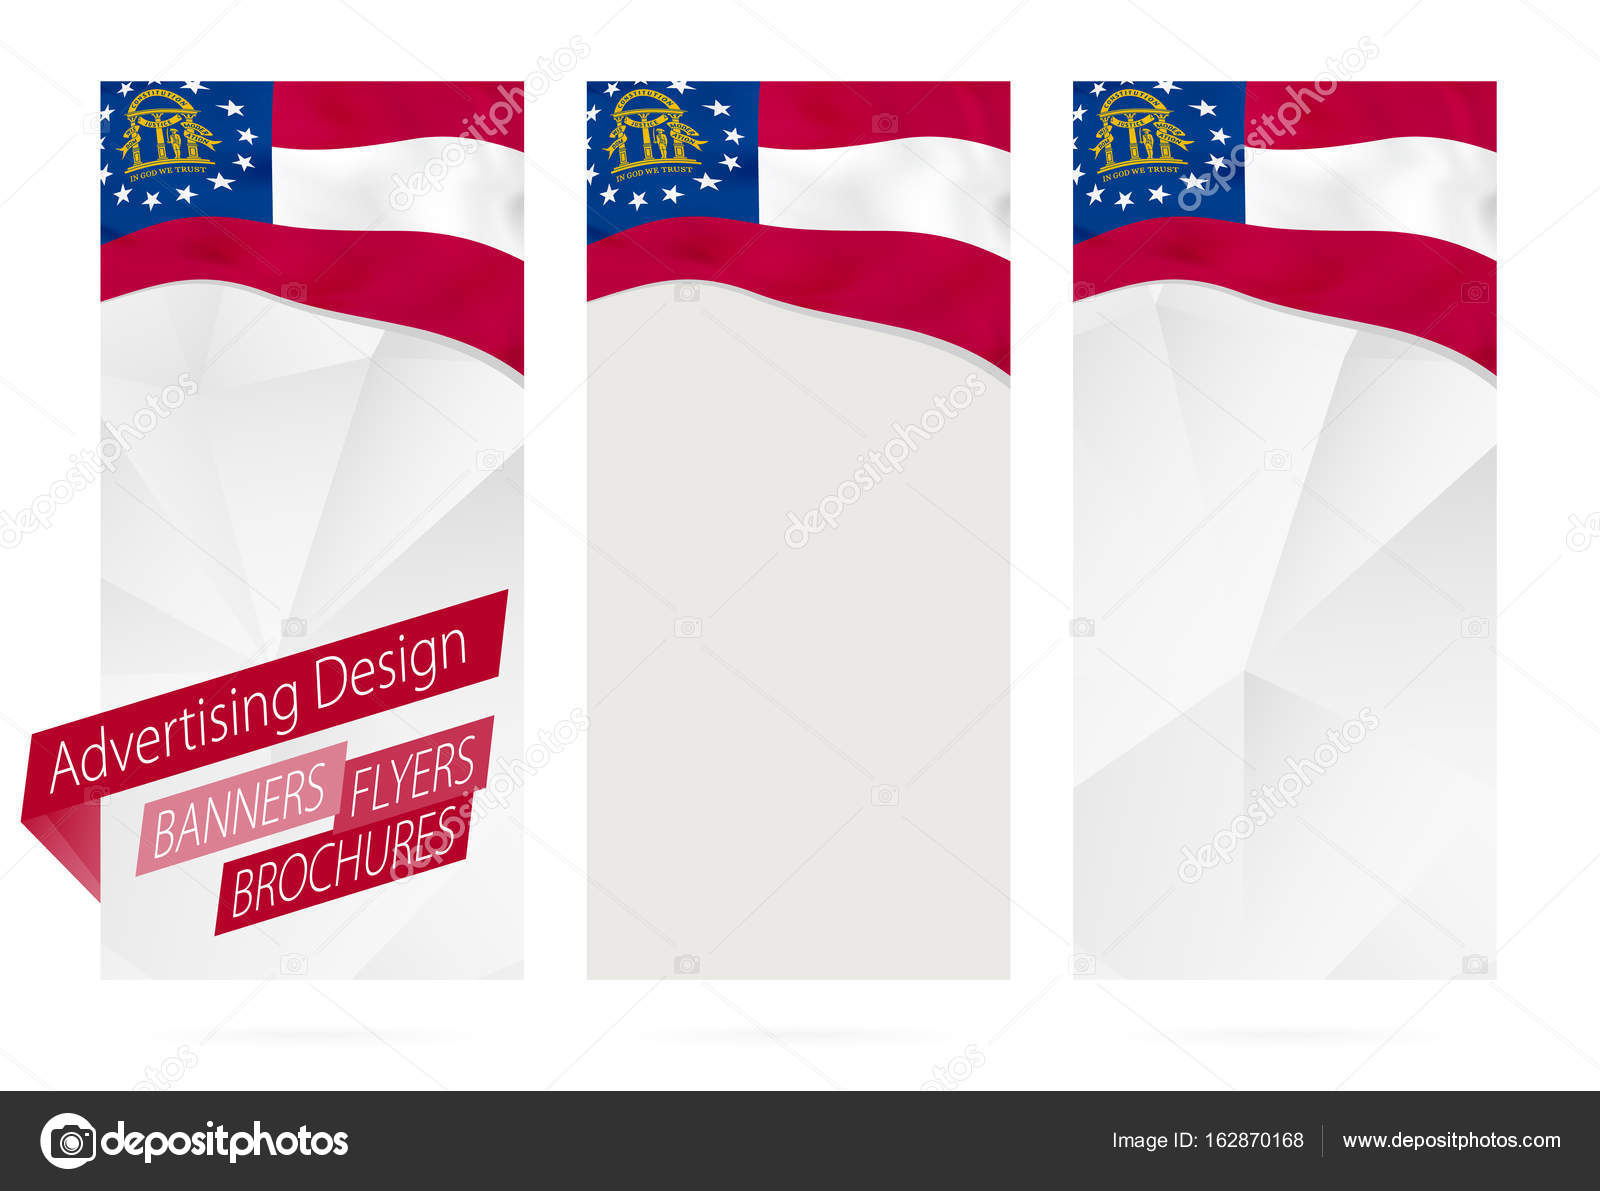 Design Of Banners Flyers Brochures With Georgia State Flag